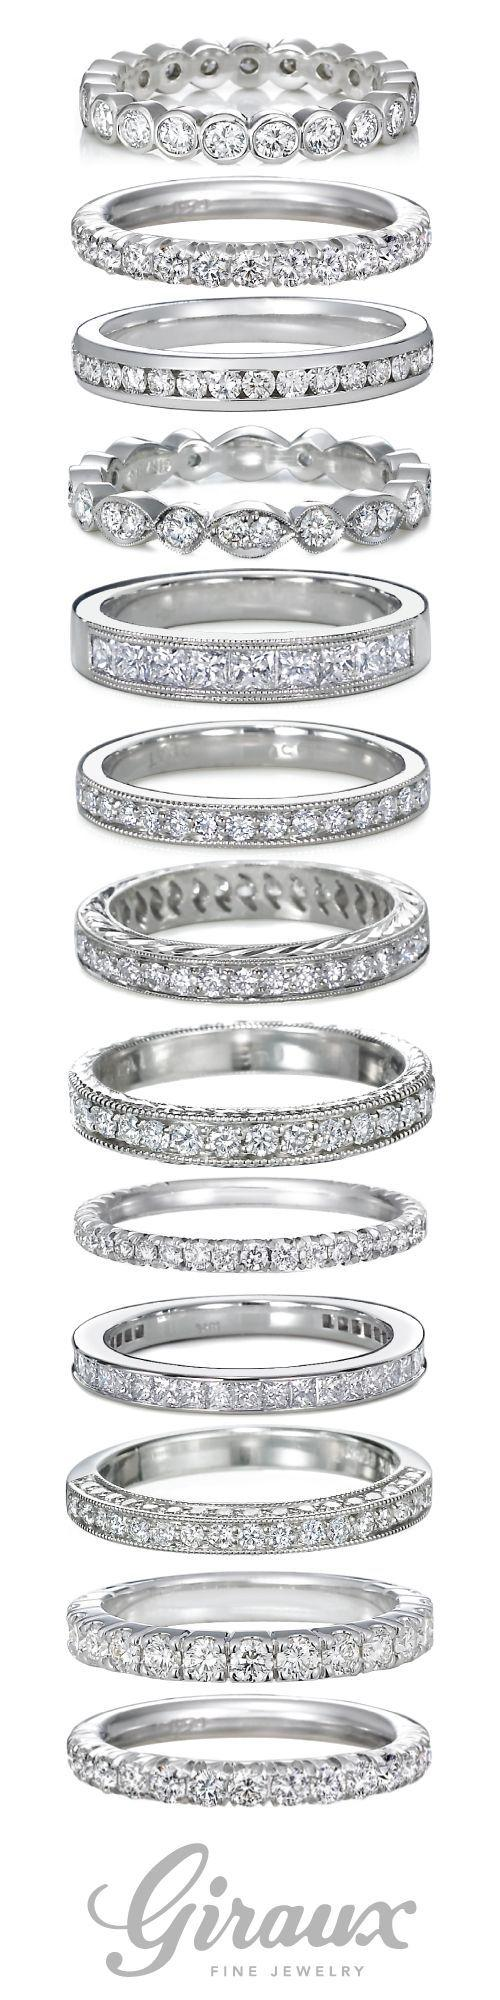 Mariage - 100 Engagement Rings & Wedding Rings You Don't Want To Miss!